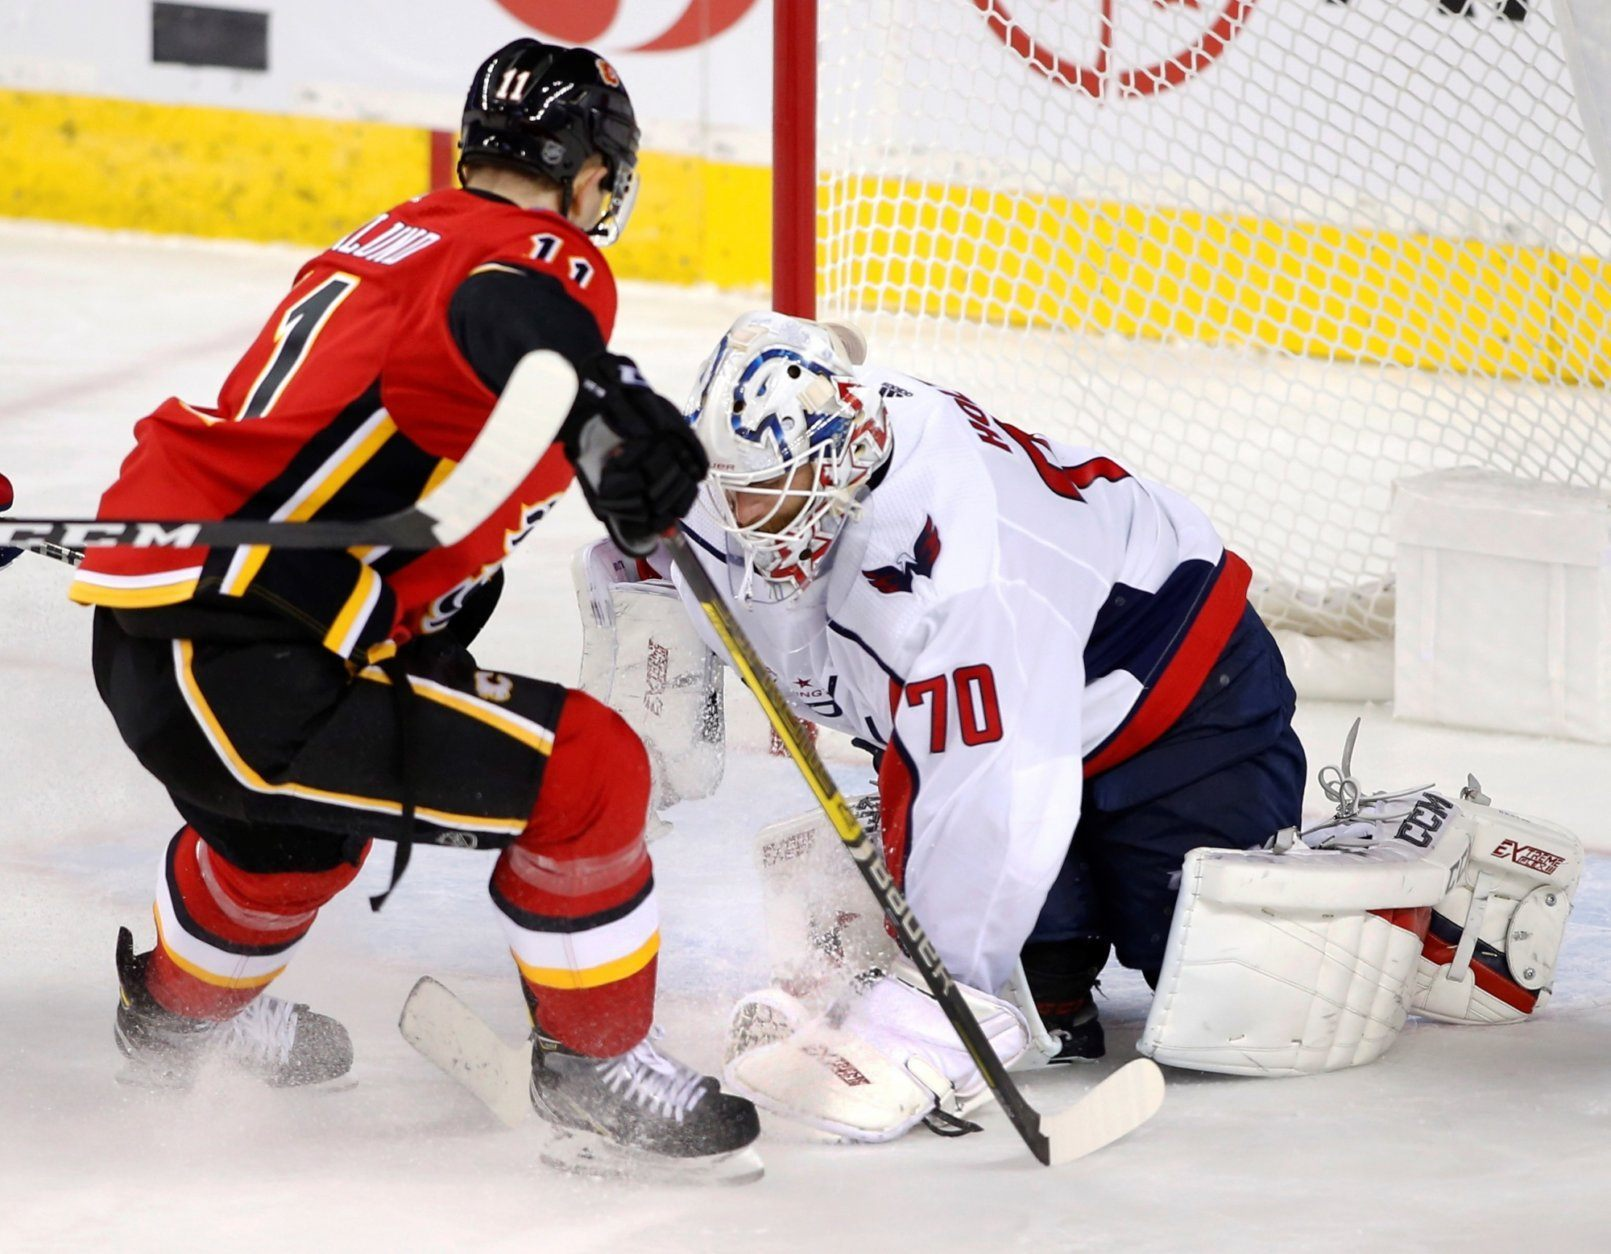 Washington Capitals goaltender Braden Holtby (70) stops the puck as Calgary Flames center Mikael Backlund (11) looks for a rebound during the second period of an NHL hockey game Tuesday, Oct. 22, 2019, in Calgary, Alberta. (Larry MacDougal/The Canadian Press via AP)